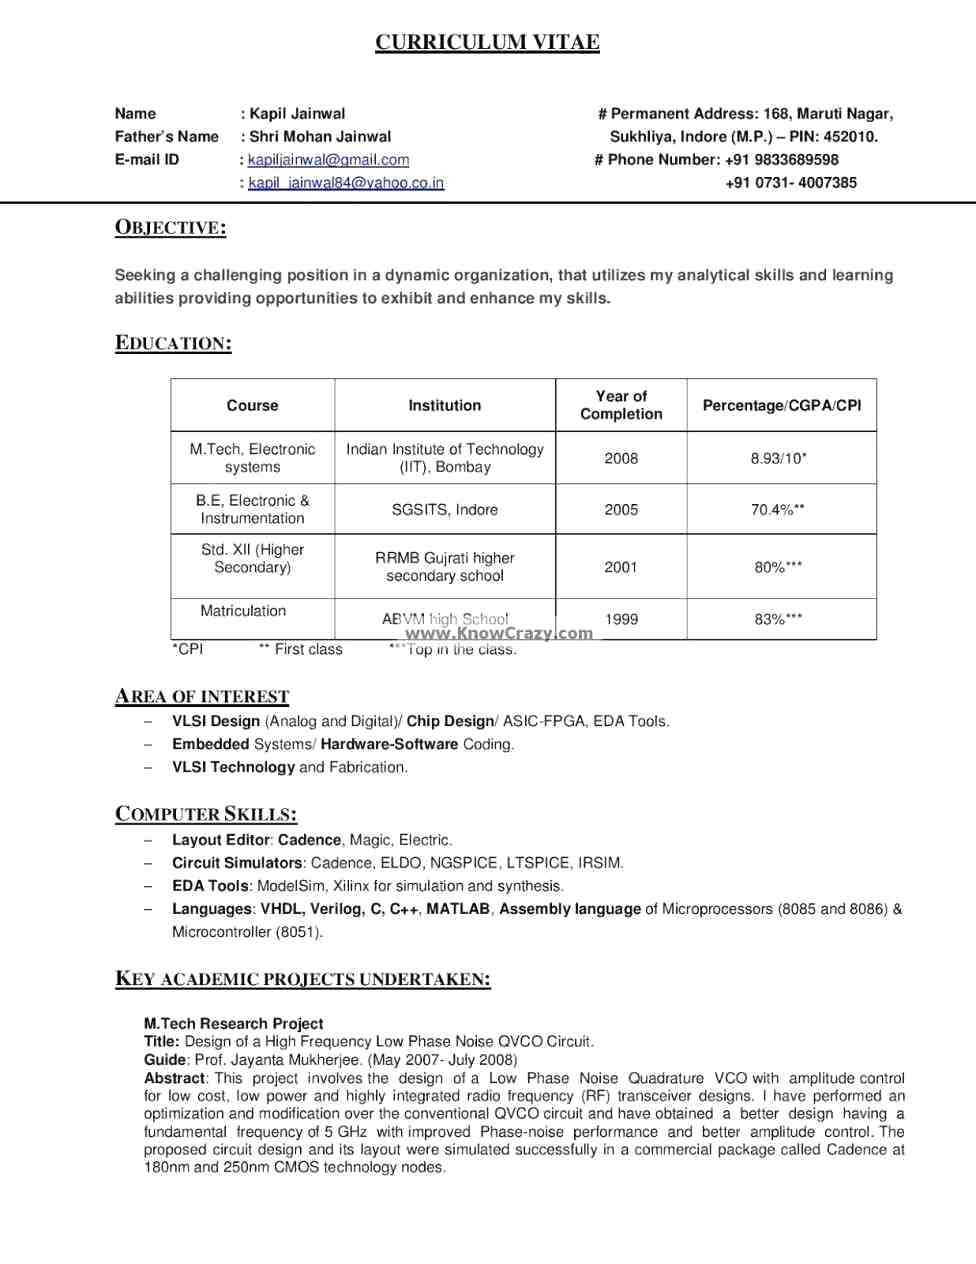 resume template architect Professional in 2020 Job